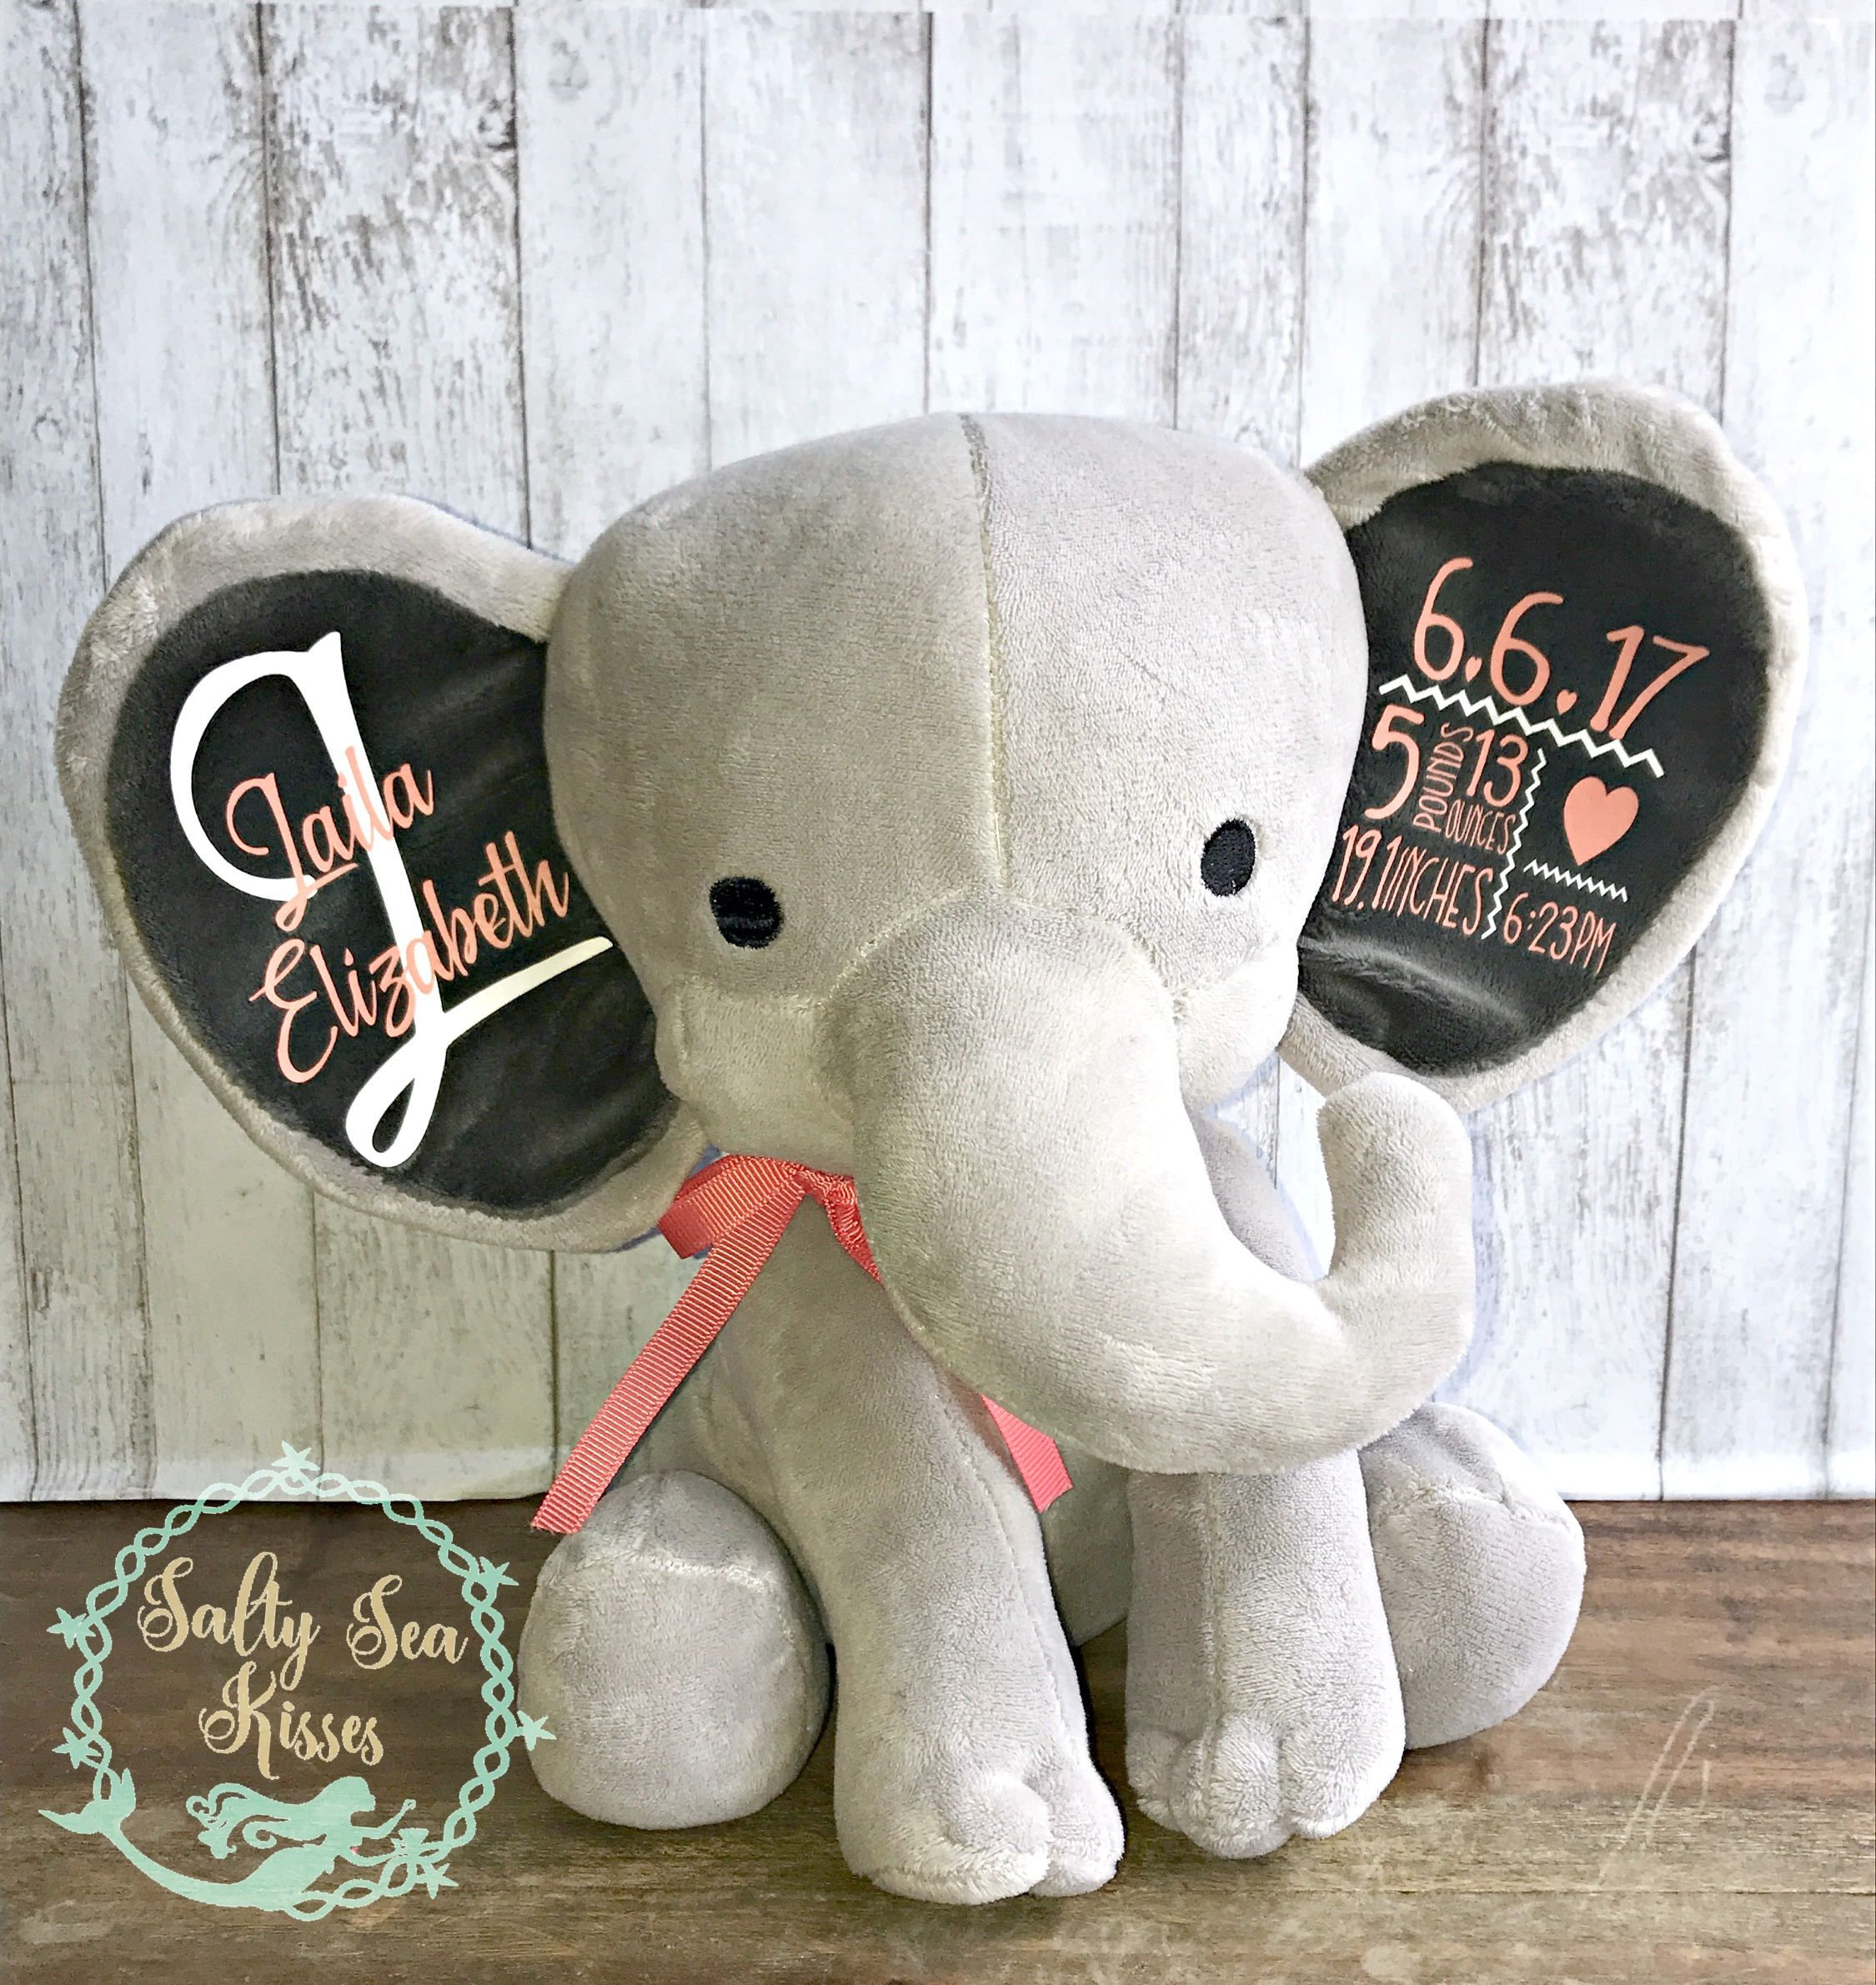 Personalized Baby birth stat stuffed elephant plush announcement keepsake